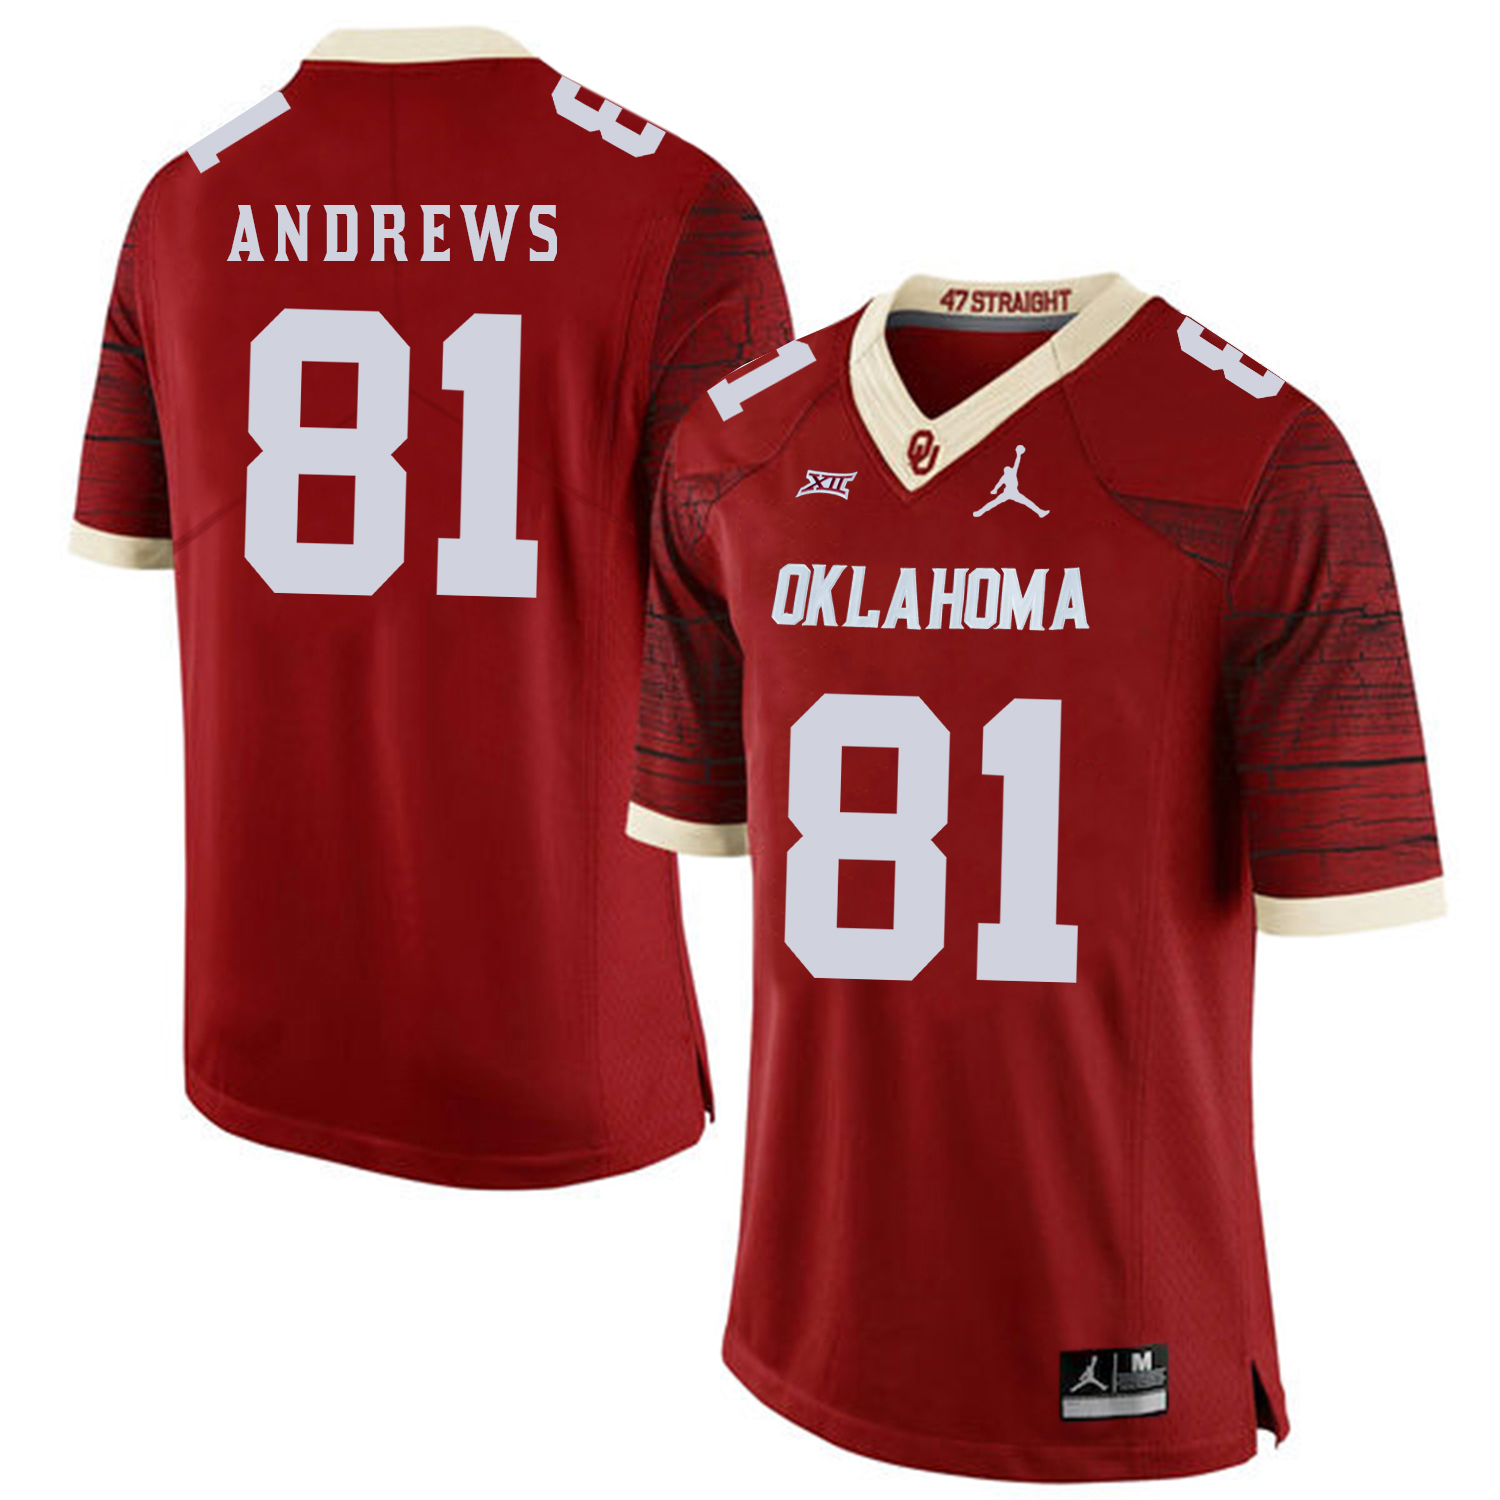 Oklahoma Sooners 81 Mark Andrews Red 47 Game Winning Streak College Football Jersey